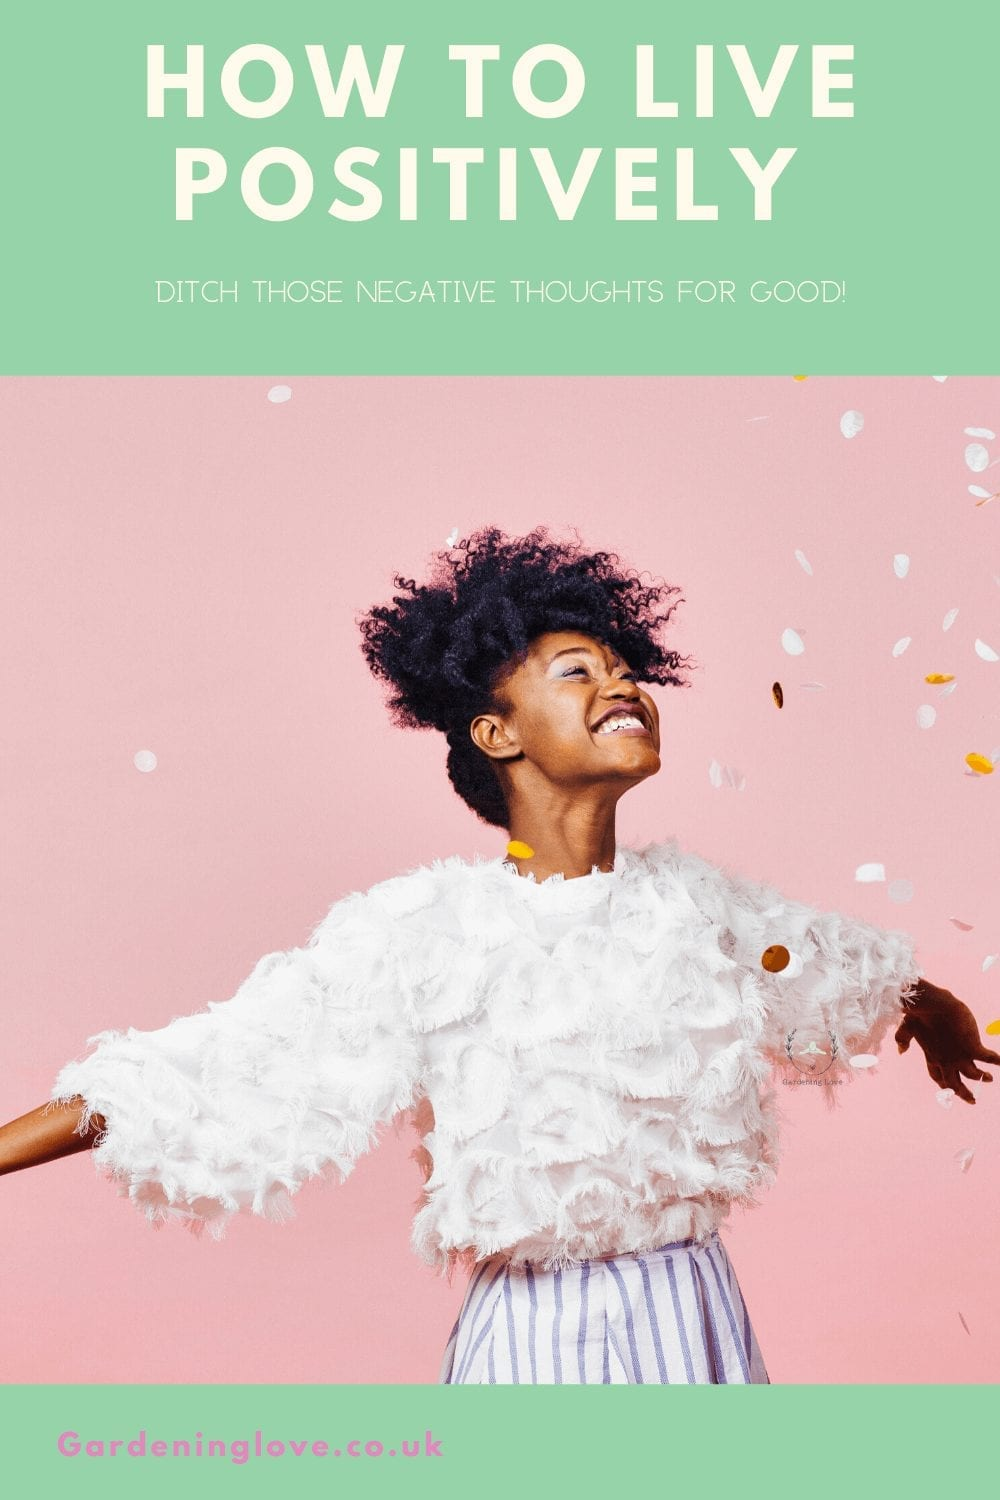 How to live positively, improve your thoughts #positive #mindset #life #personaldevelopment